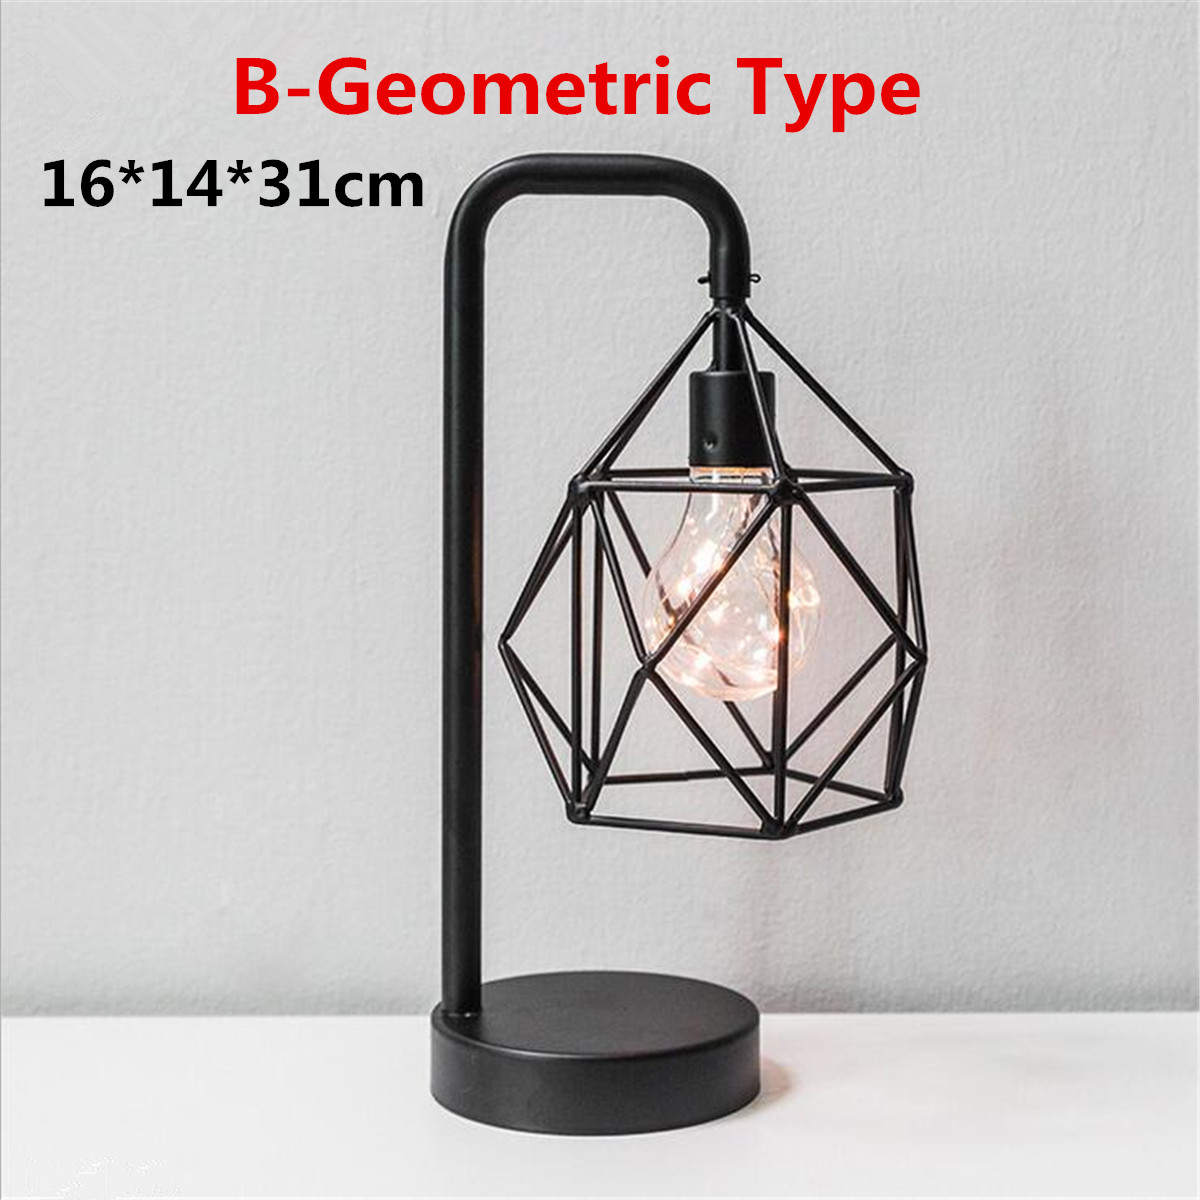 Modern Industrial Curved Table Lamp Marble Base Geometric Light Shade Copper Indoor Lighting Bedroom Diamond Table Lights